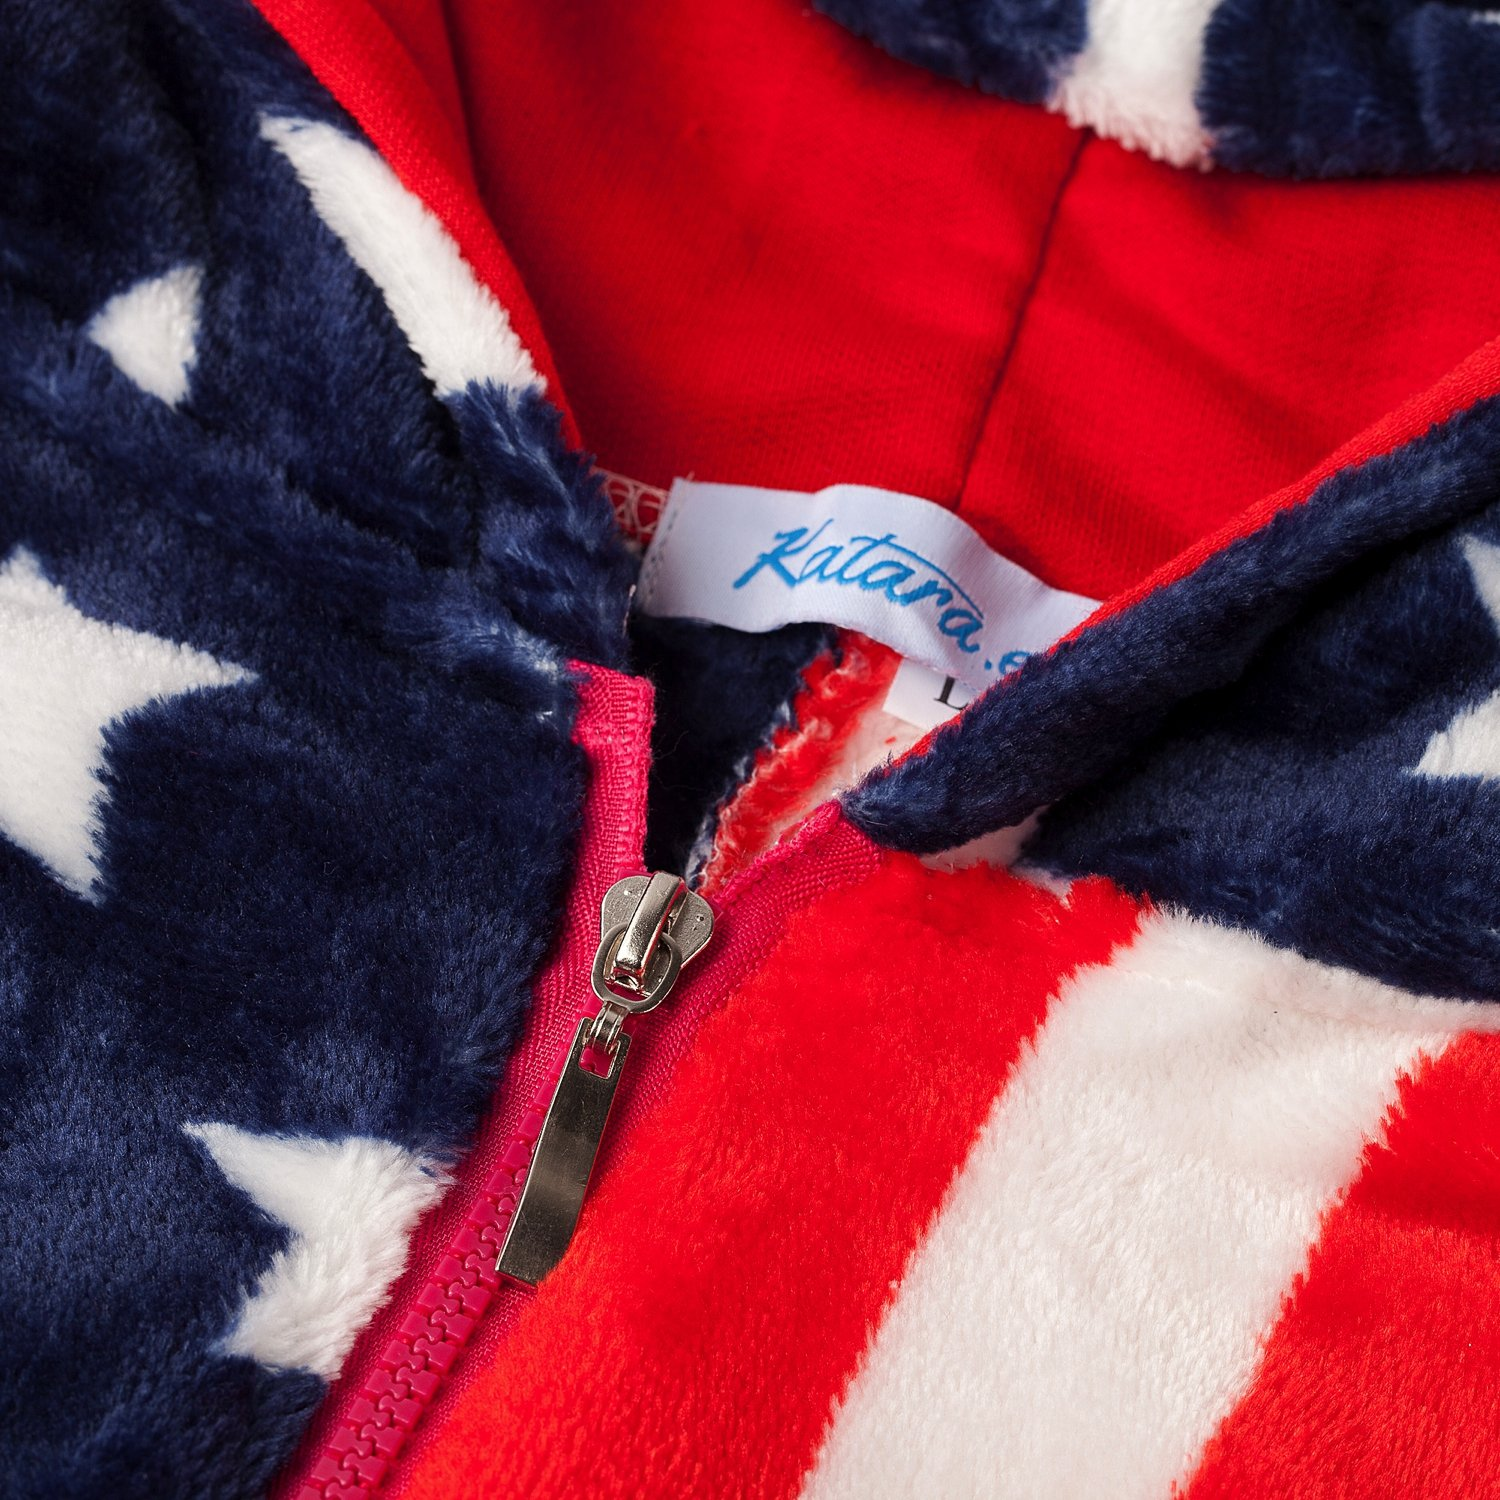 Loungewear Plush Onesie Height 145-155cm Fluffy Hooded Overall Pyjama For Adults S Slumber Party Unisex Costume With American Flag Print Stars And Stripes Katara 1844-001 Fleecy USA Jumpsuit